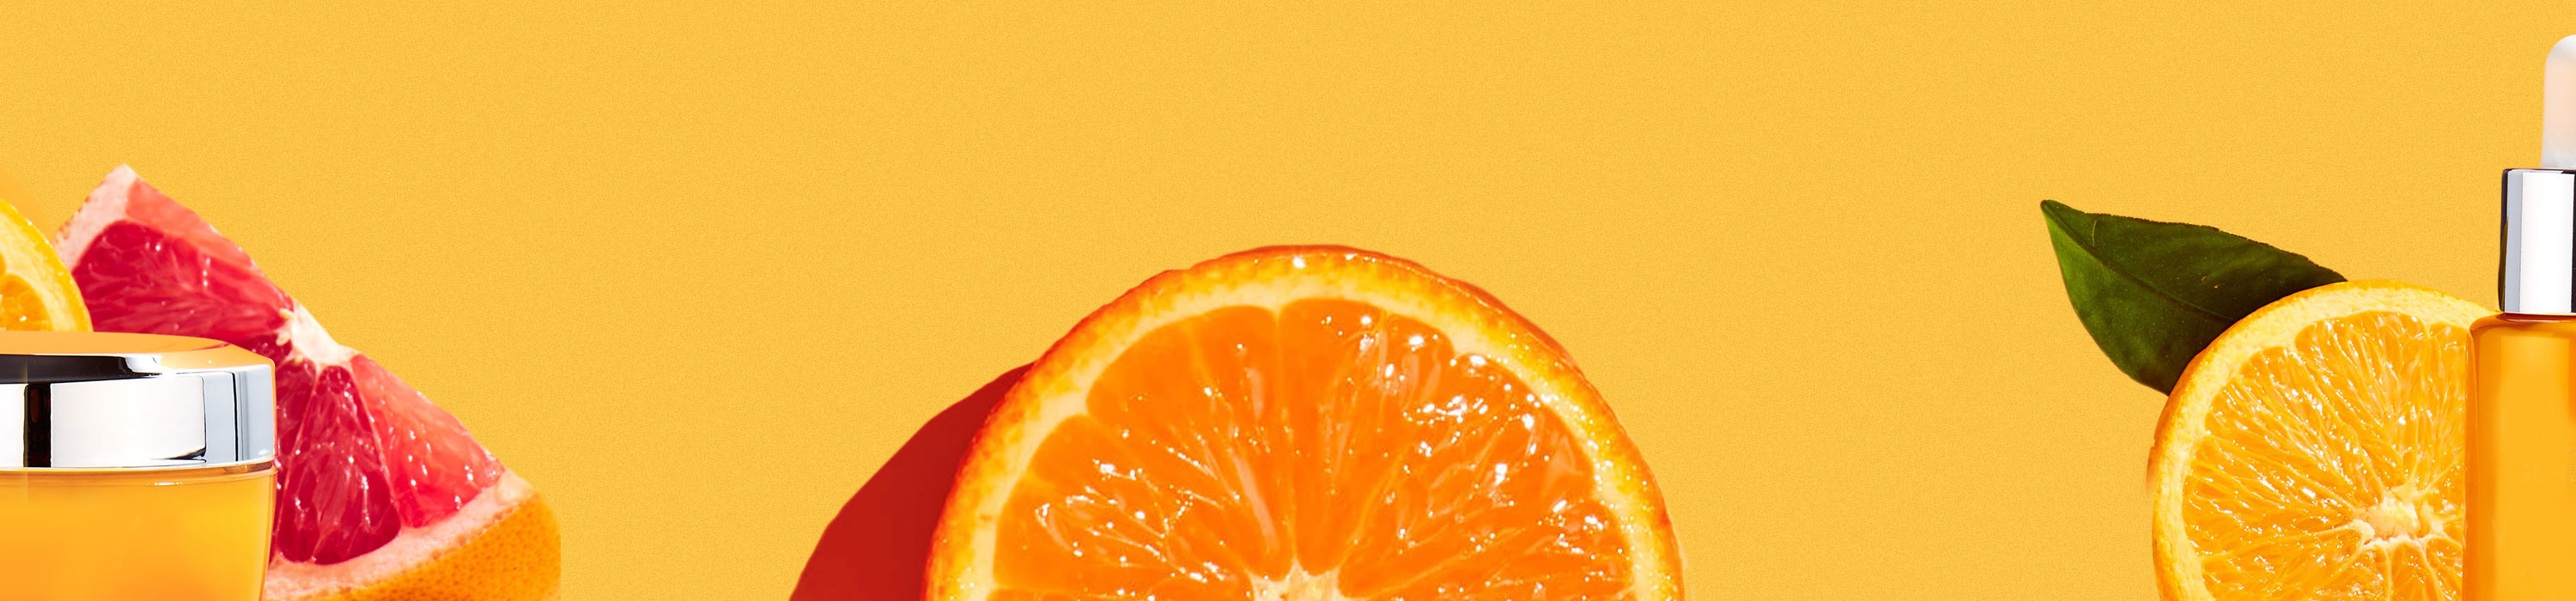 PSST - We've got a juicy secret. Join the OLAY waitlist to be the first to know when the new Vitamin C products launch.